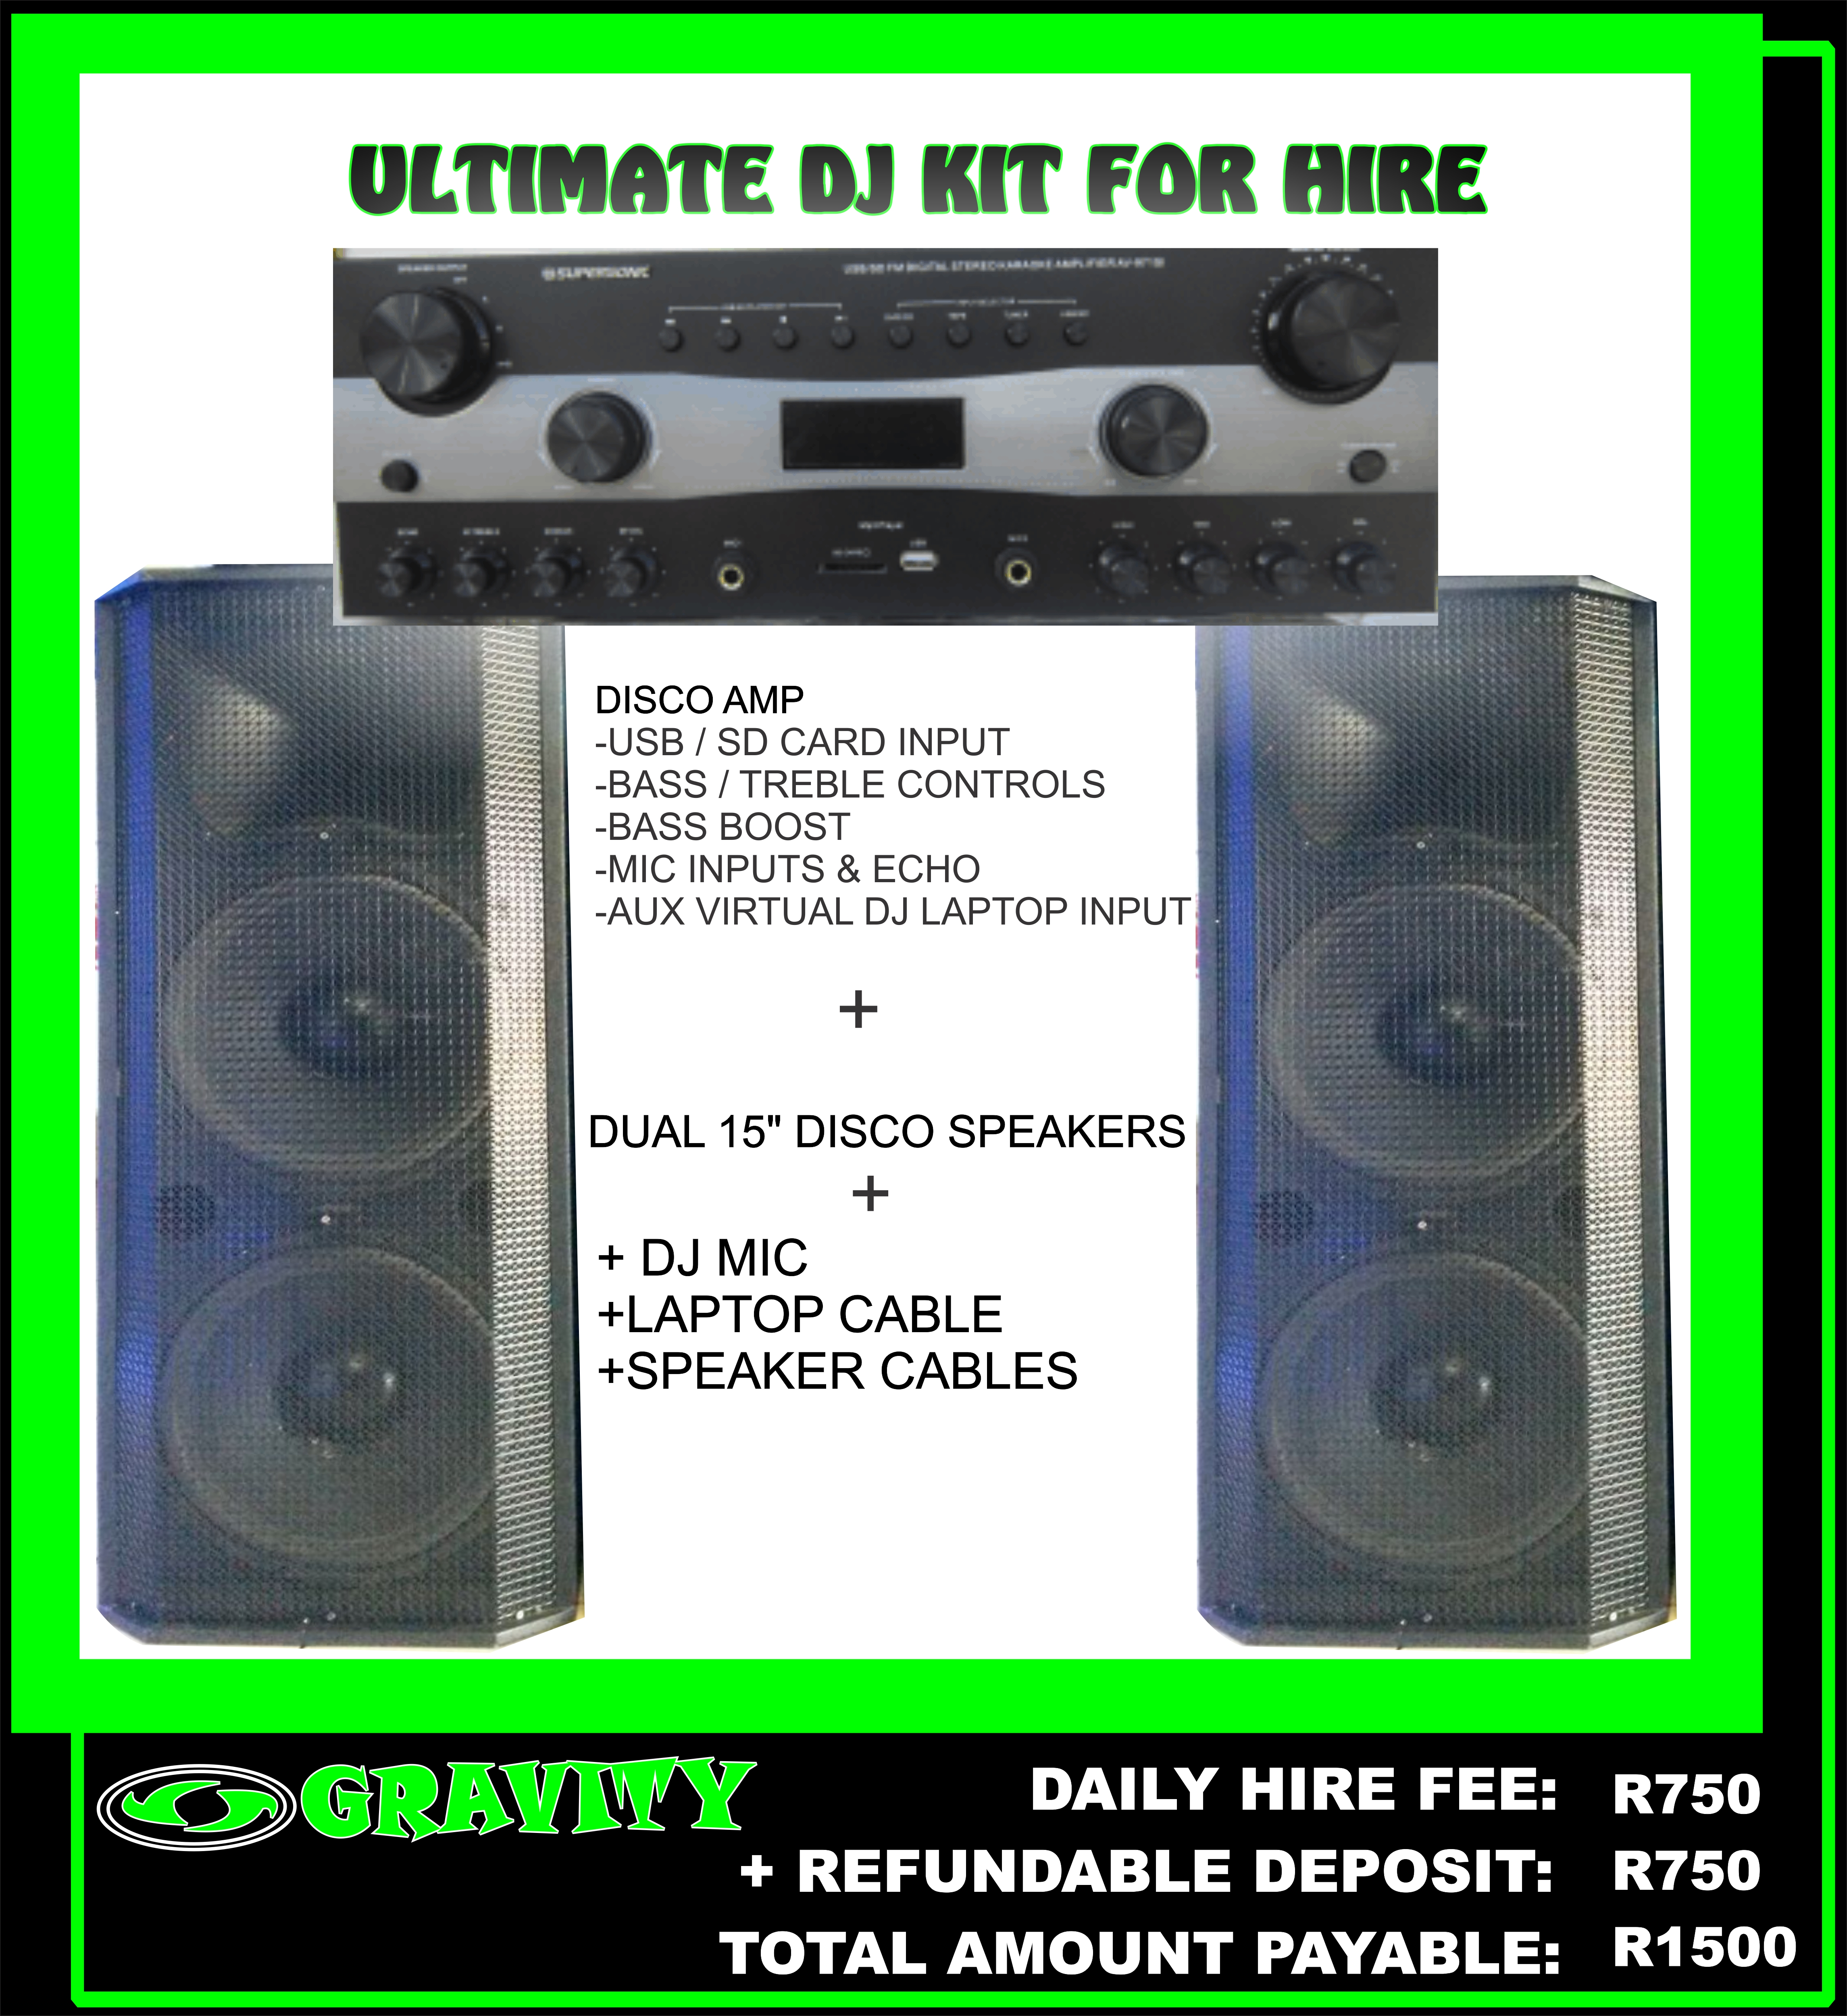 THE ULTIMATE DJ COMBO SOUND SYSTEM FOR HIRE  PLUG & PLAY SYSTEM  >DISCO AMPLIFIER   -700W   -USB & SD CARD INPUTS   -AUX VIRTUAL DJ LAPTOP INPUT   -MIC INPUTS & ECHO   -BASS BOOST  + DUAL 15